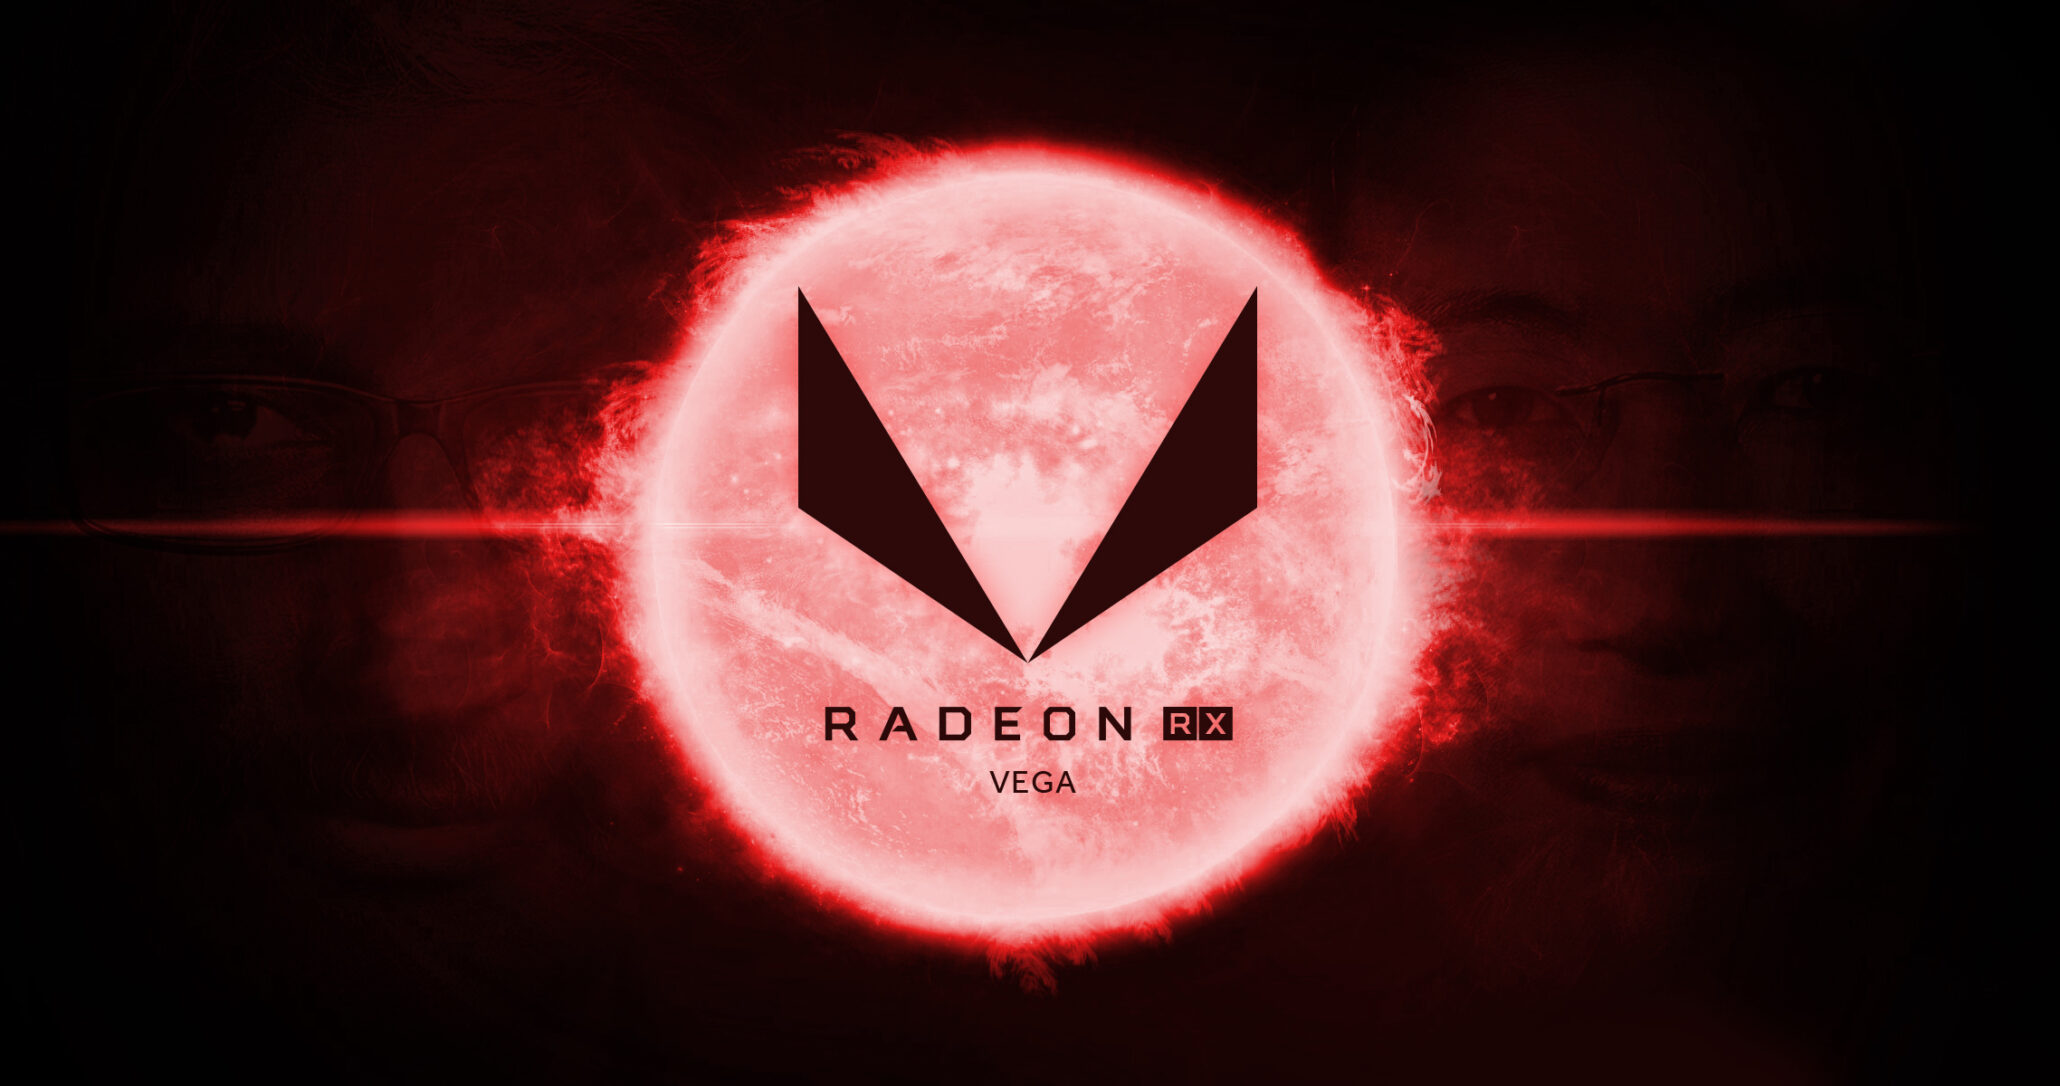 Amd Radeon Rx Vega Teaser Video Leaked 8 Gb Hbm2 Graphics Card Pictured